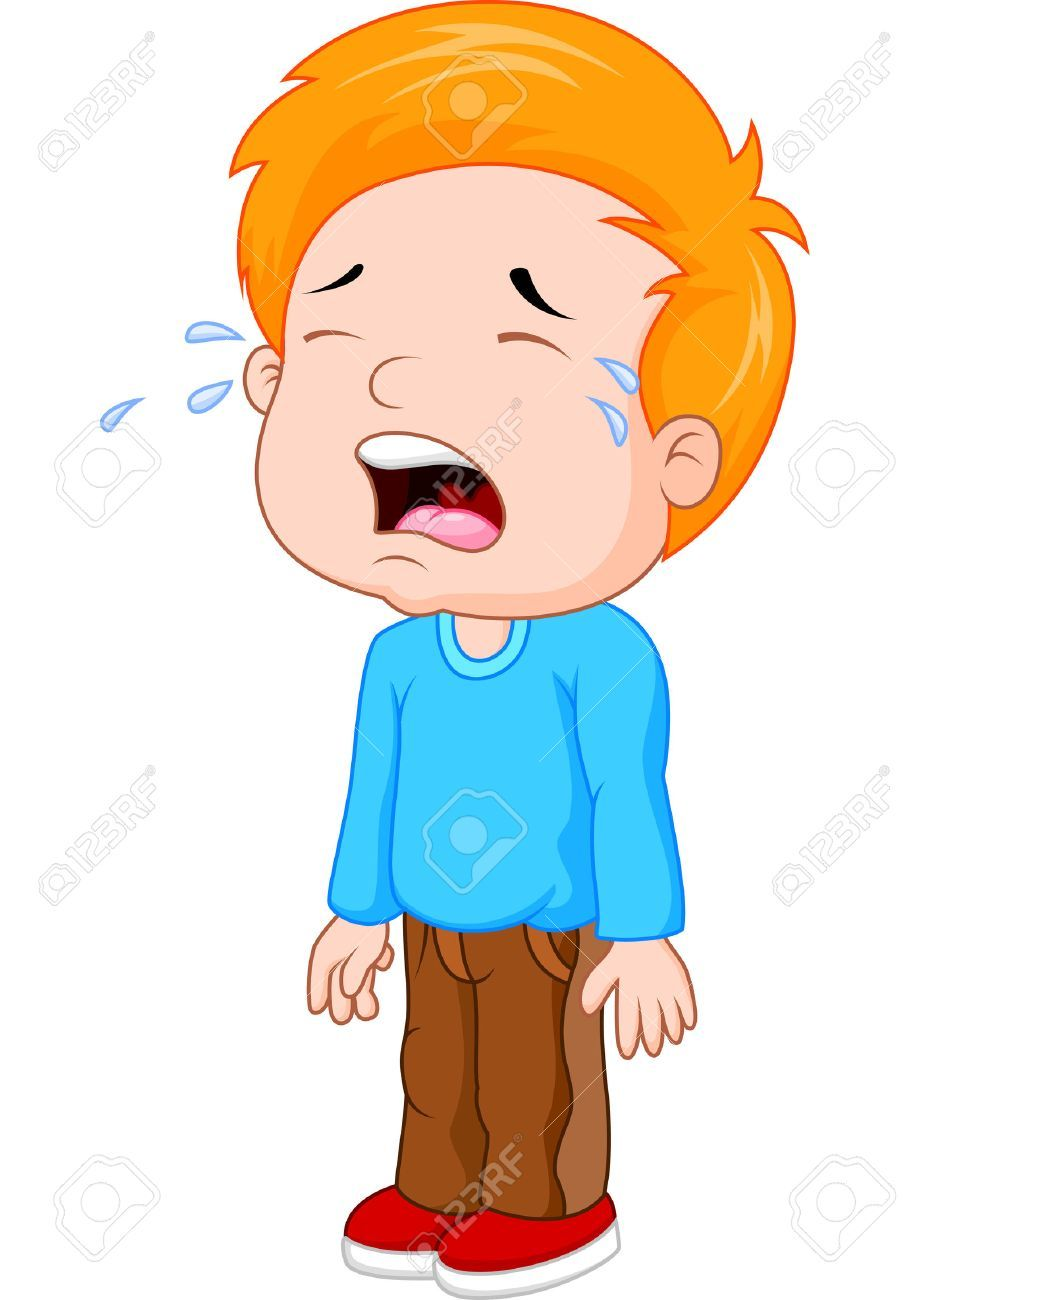 Crying child clipart 3 » Clipart Portal.